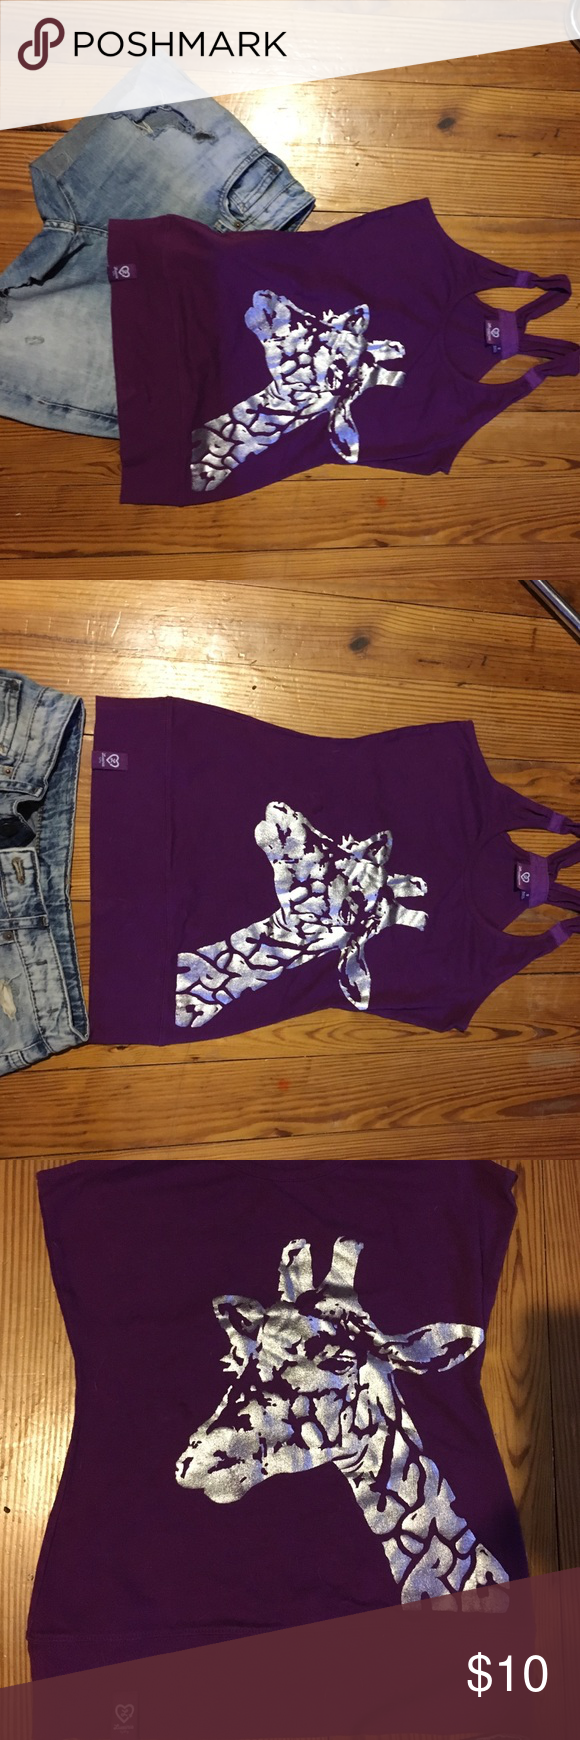 Purple tank with silver giraffe image Purple womens tank by LRG. Wide bottom waistband with LRG logo on left hip. Silver foil giraffe logo. Straps have ruched accent details. Size small. Back is plain solid purple. Lrg Tops Tank Tops